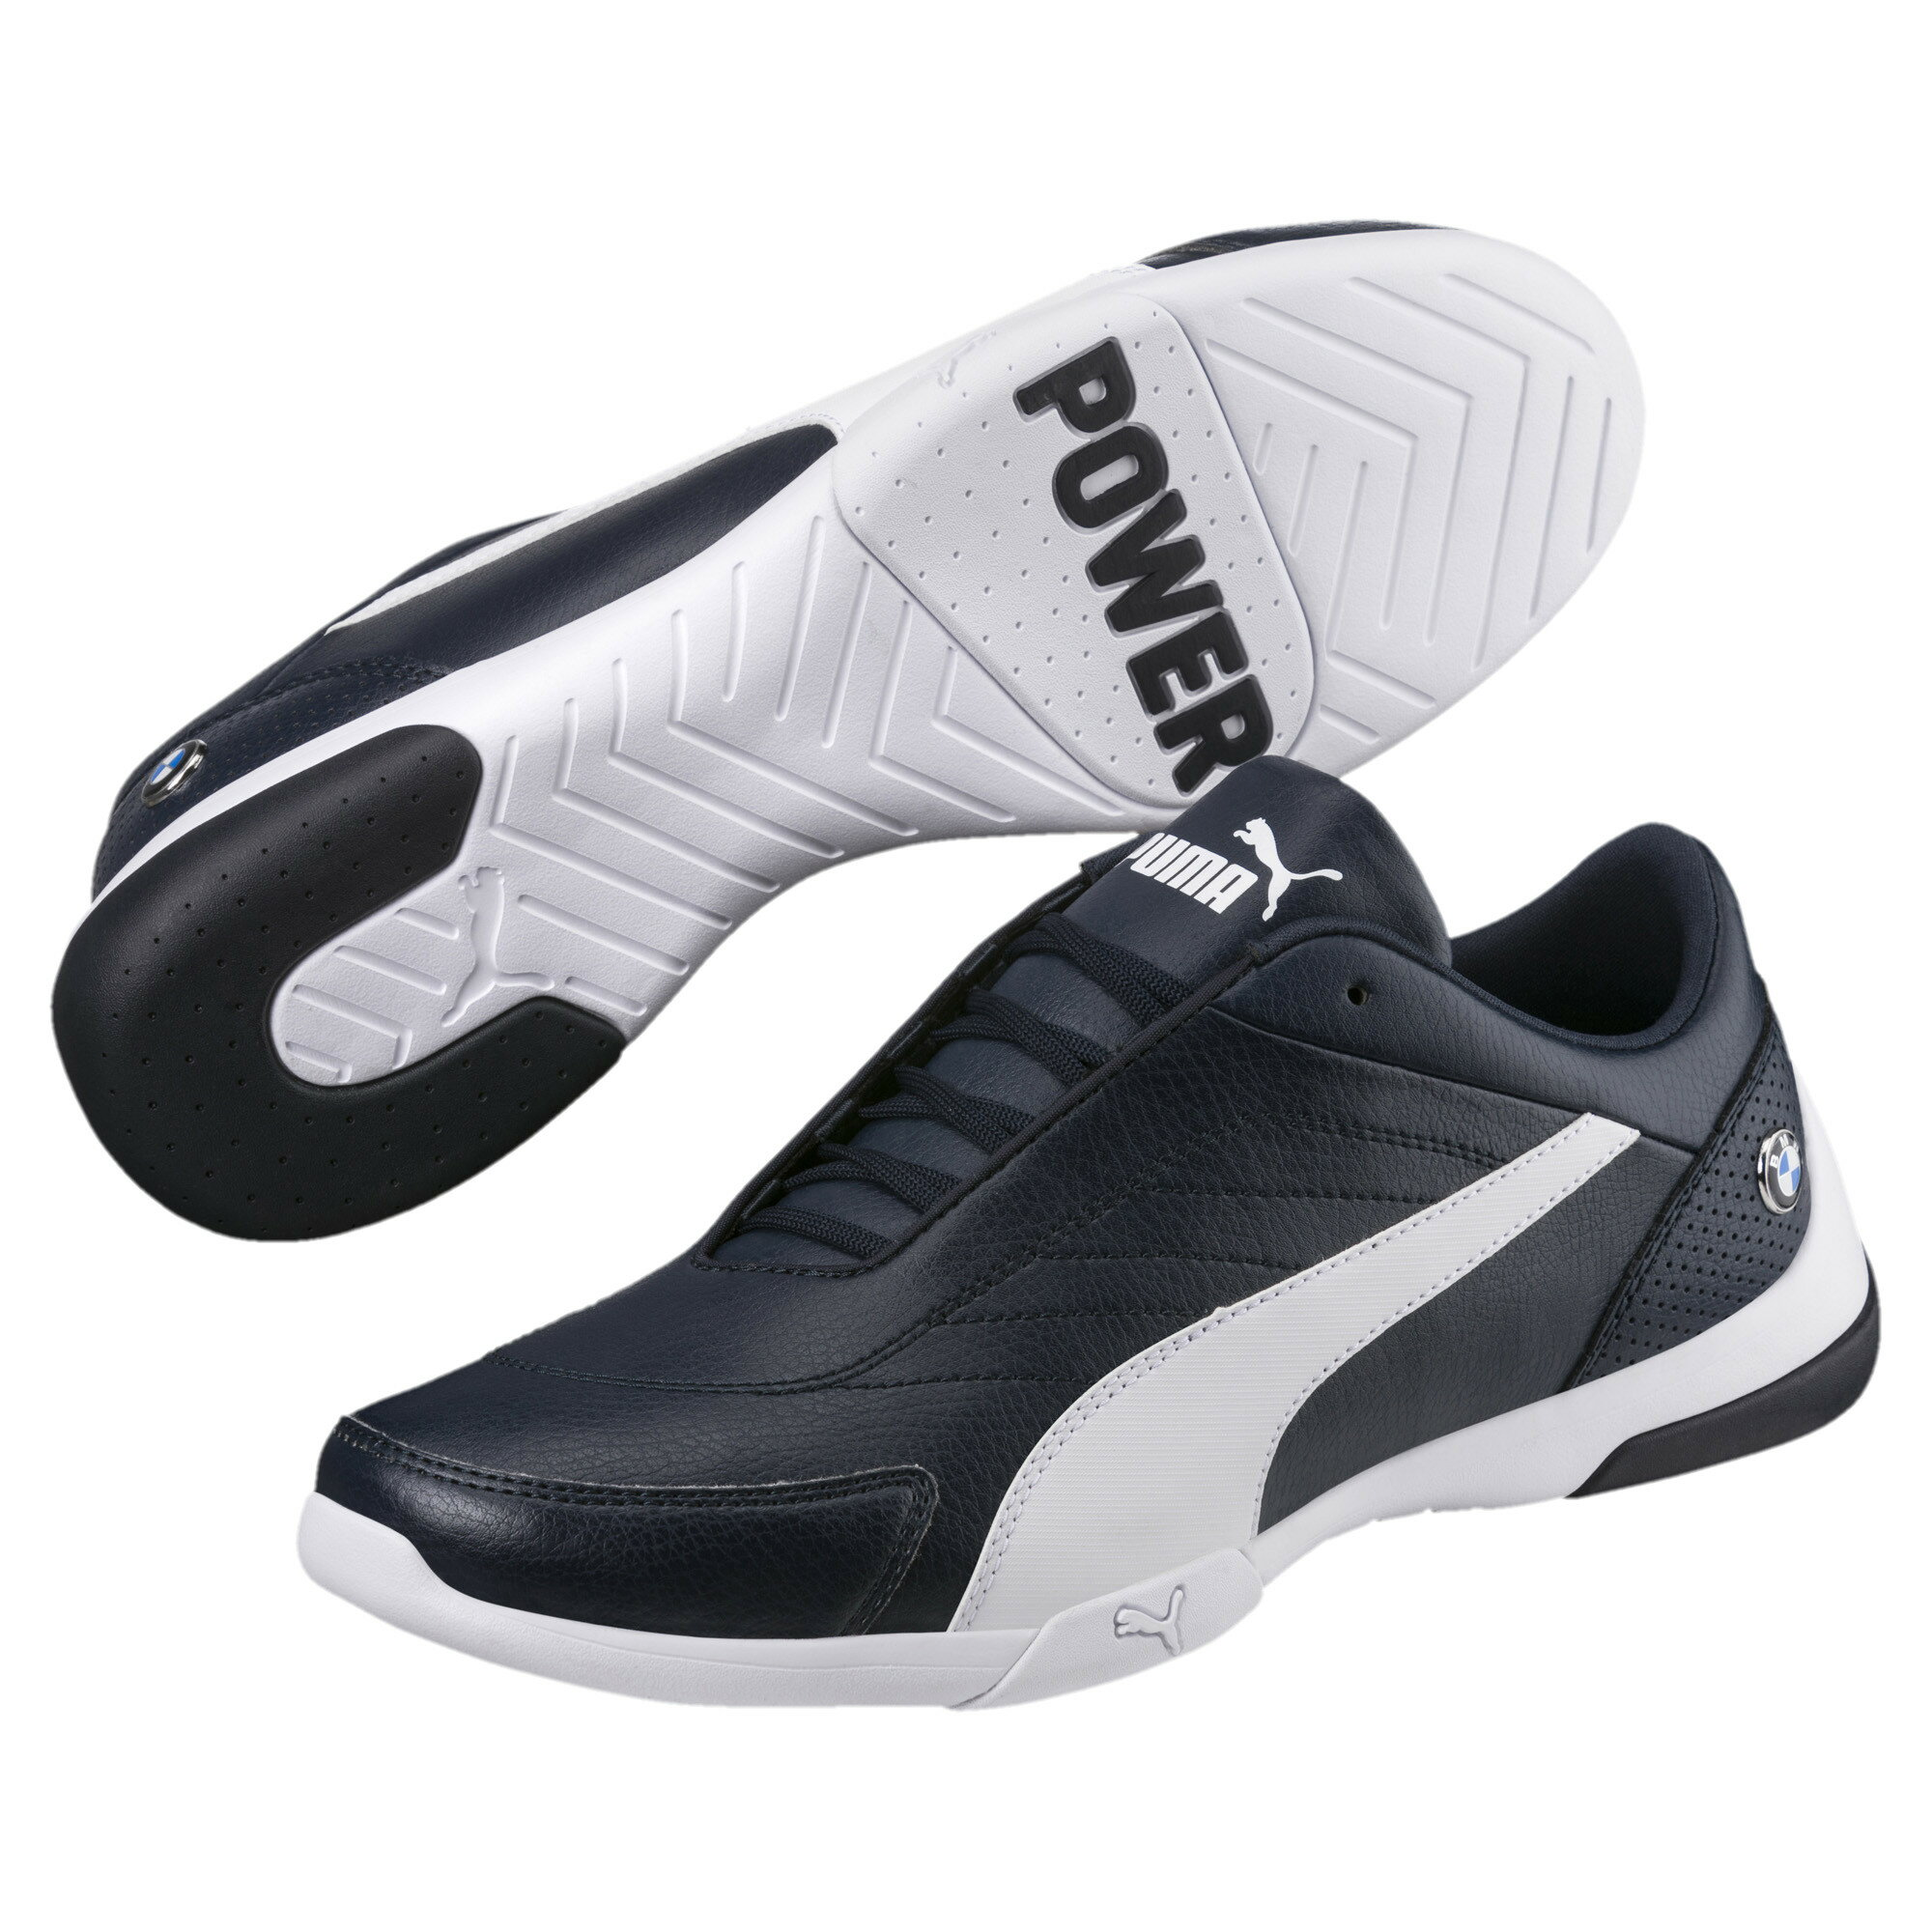 0cf124b6205c4 Official Puma Store  PUMA BMW M Motorsport Kart Cat III Sneakers ...